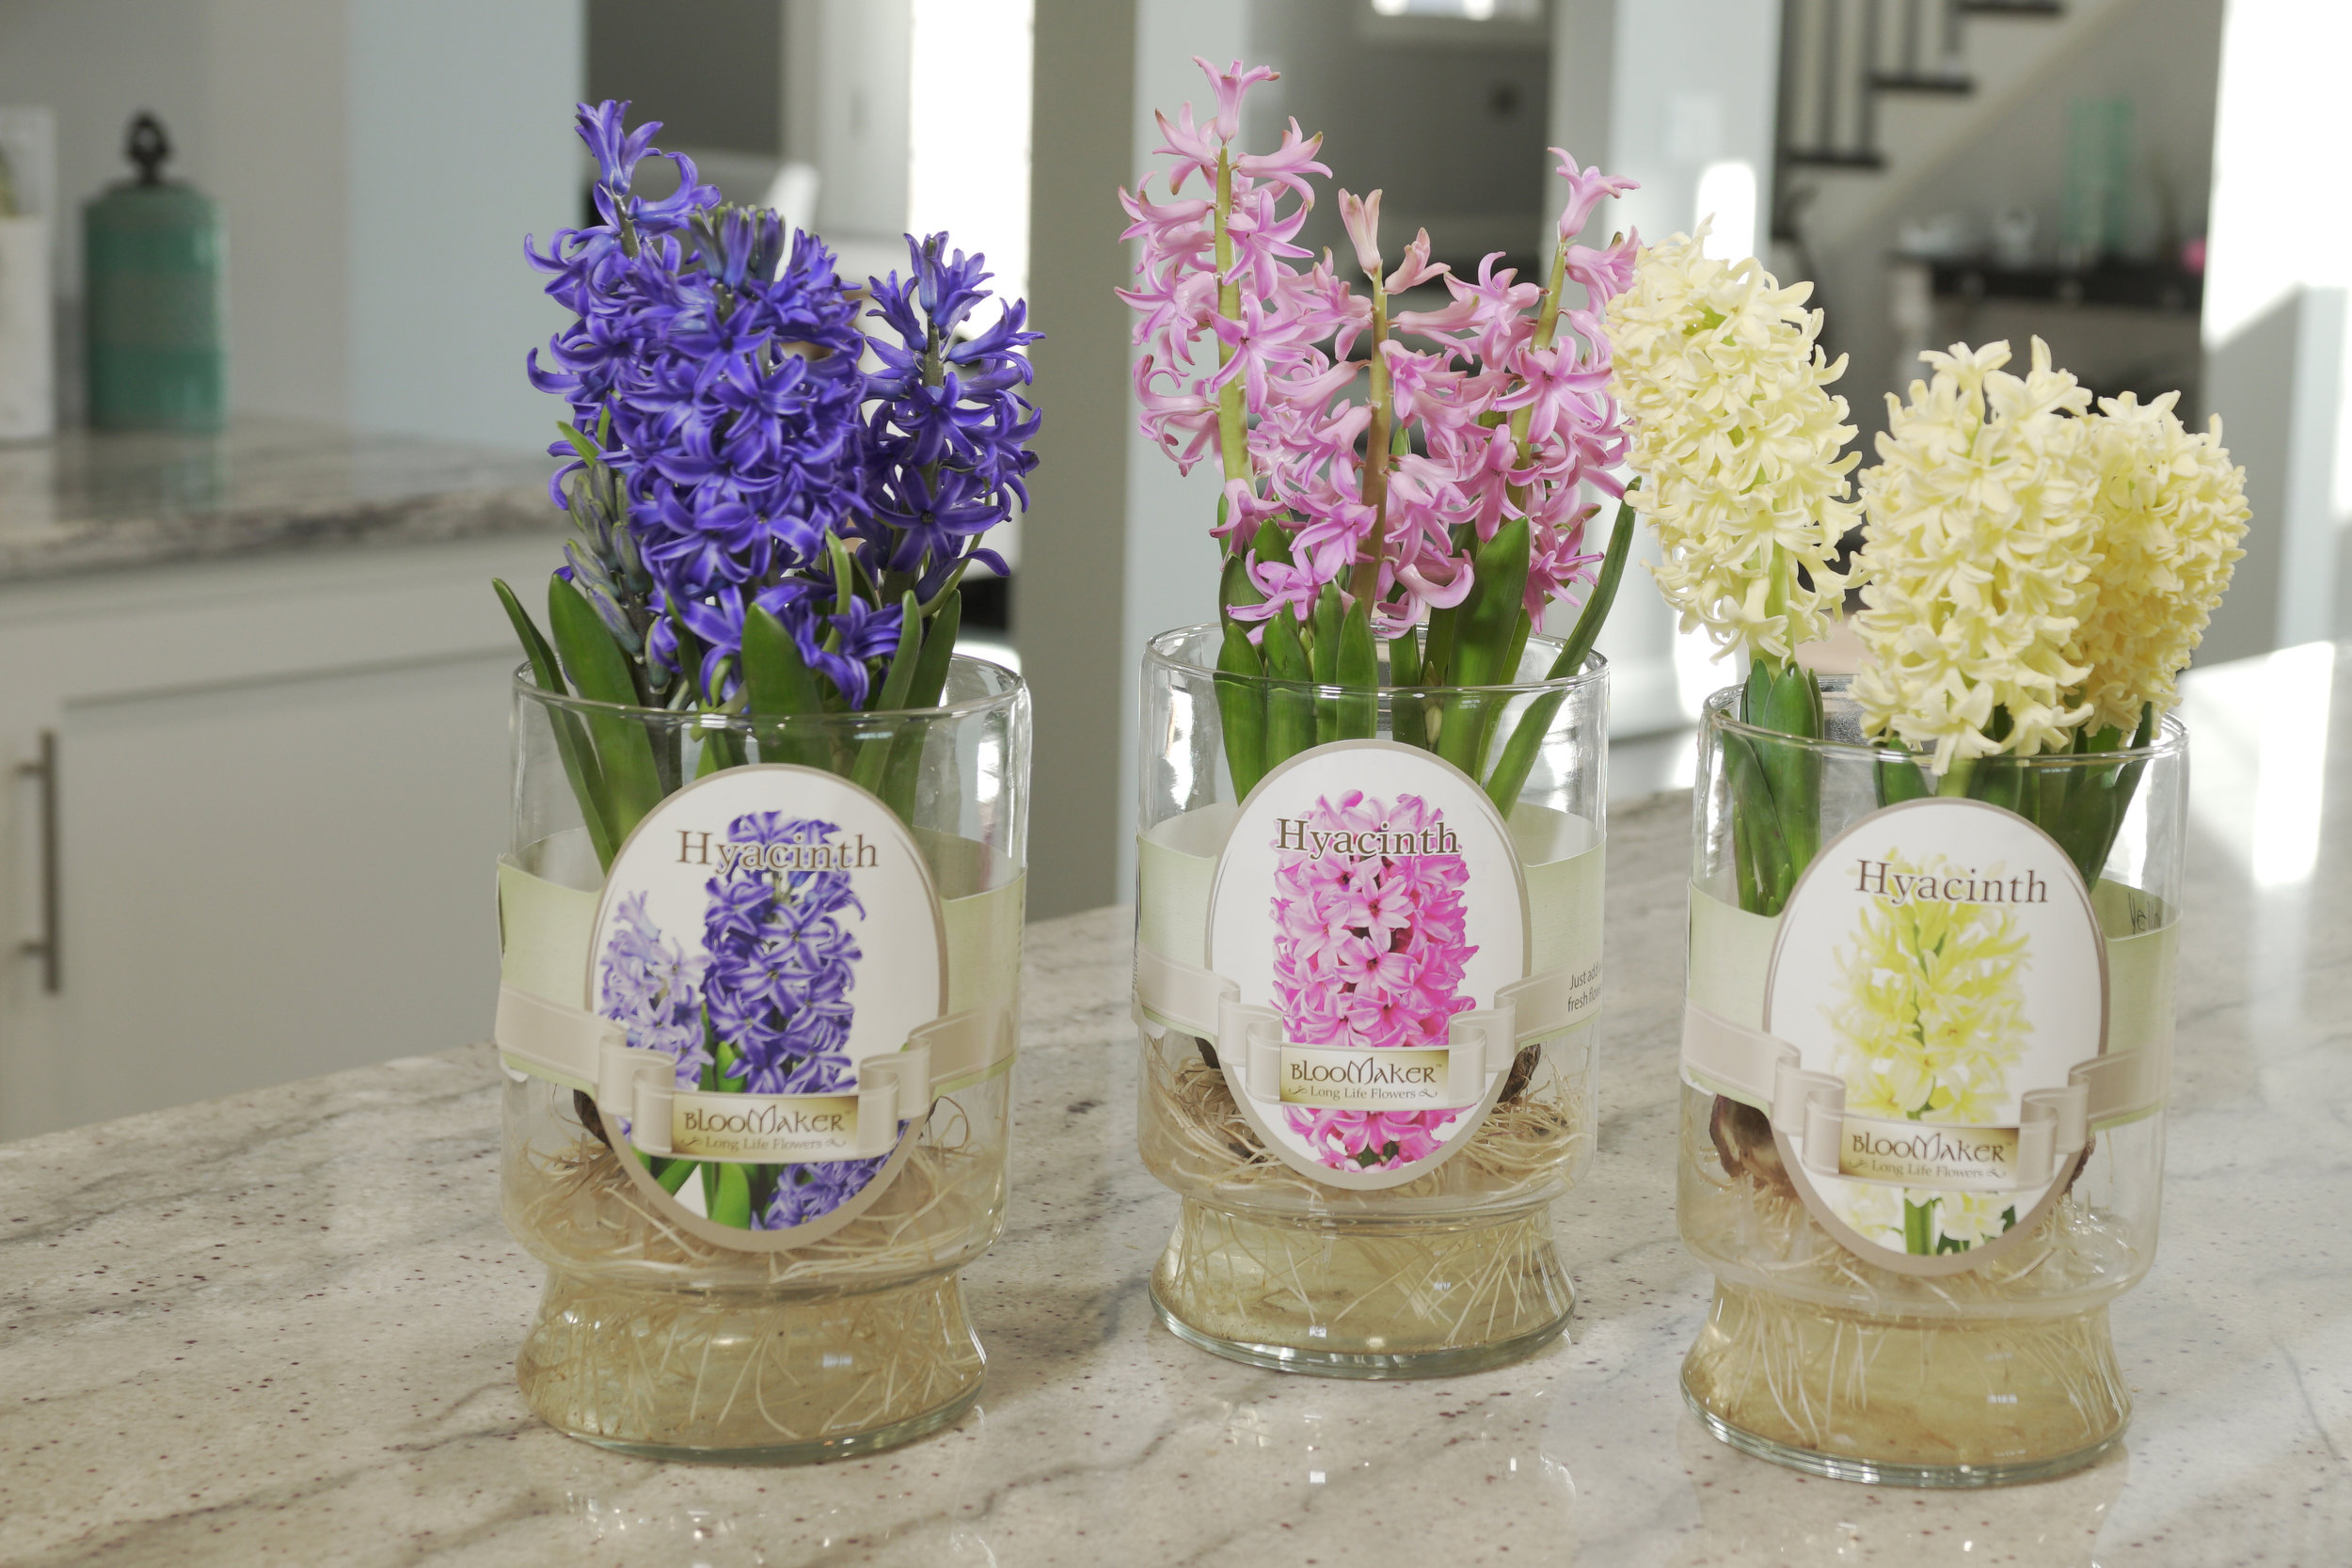 Hyacinths - Our Hyacinth and Muscari (Grape Hyacinth) bulbs are hand-picked for the highest quality in the Netherlands and sent to our U.S. based greenhouses to help them grow hydroponically into beautiful blooms. Purchase them while budding to watch them grow, or purchase them in bloom to enjoy in the moment. Our FAQ provides tips on care.Share them to brighten someone's day, or keep them all to yourself. Either way, we promise they will put a smile on your face.Hyacinth Product Specifications